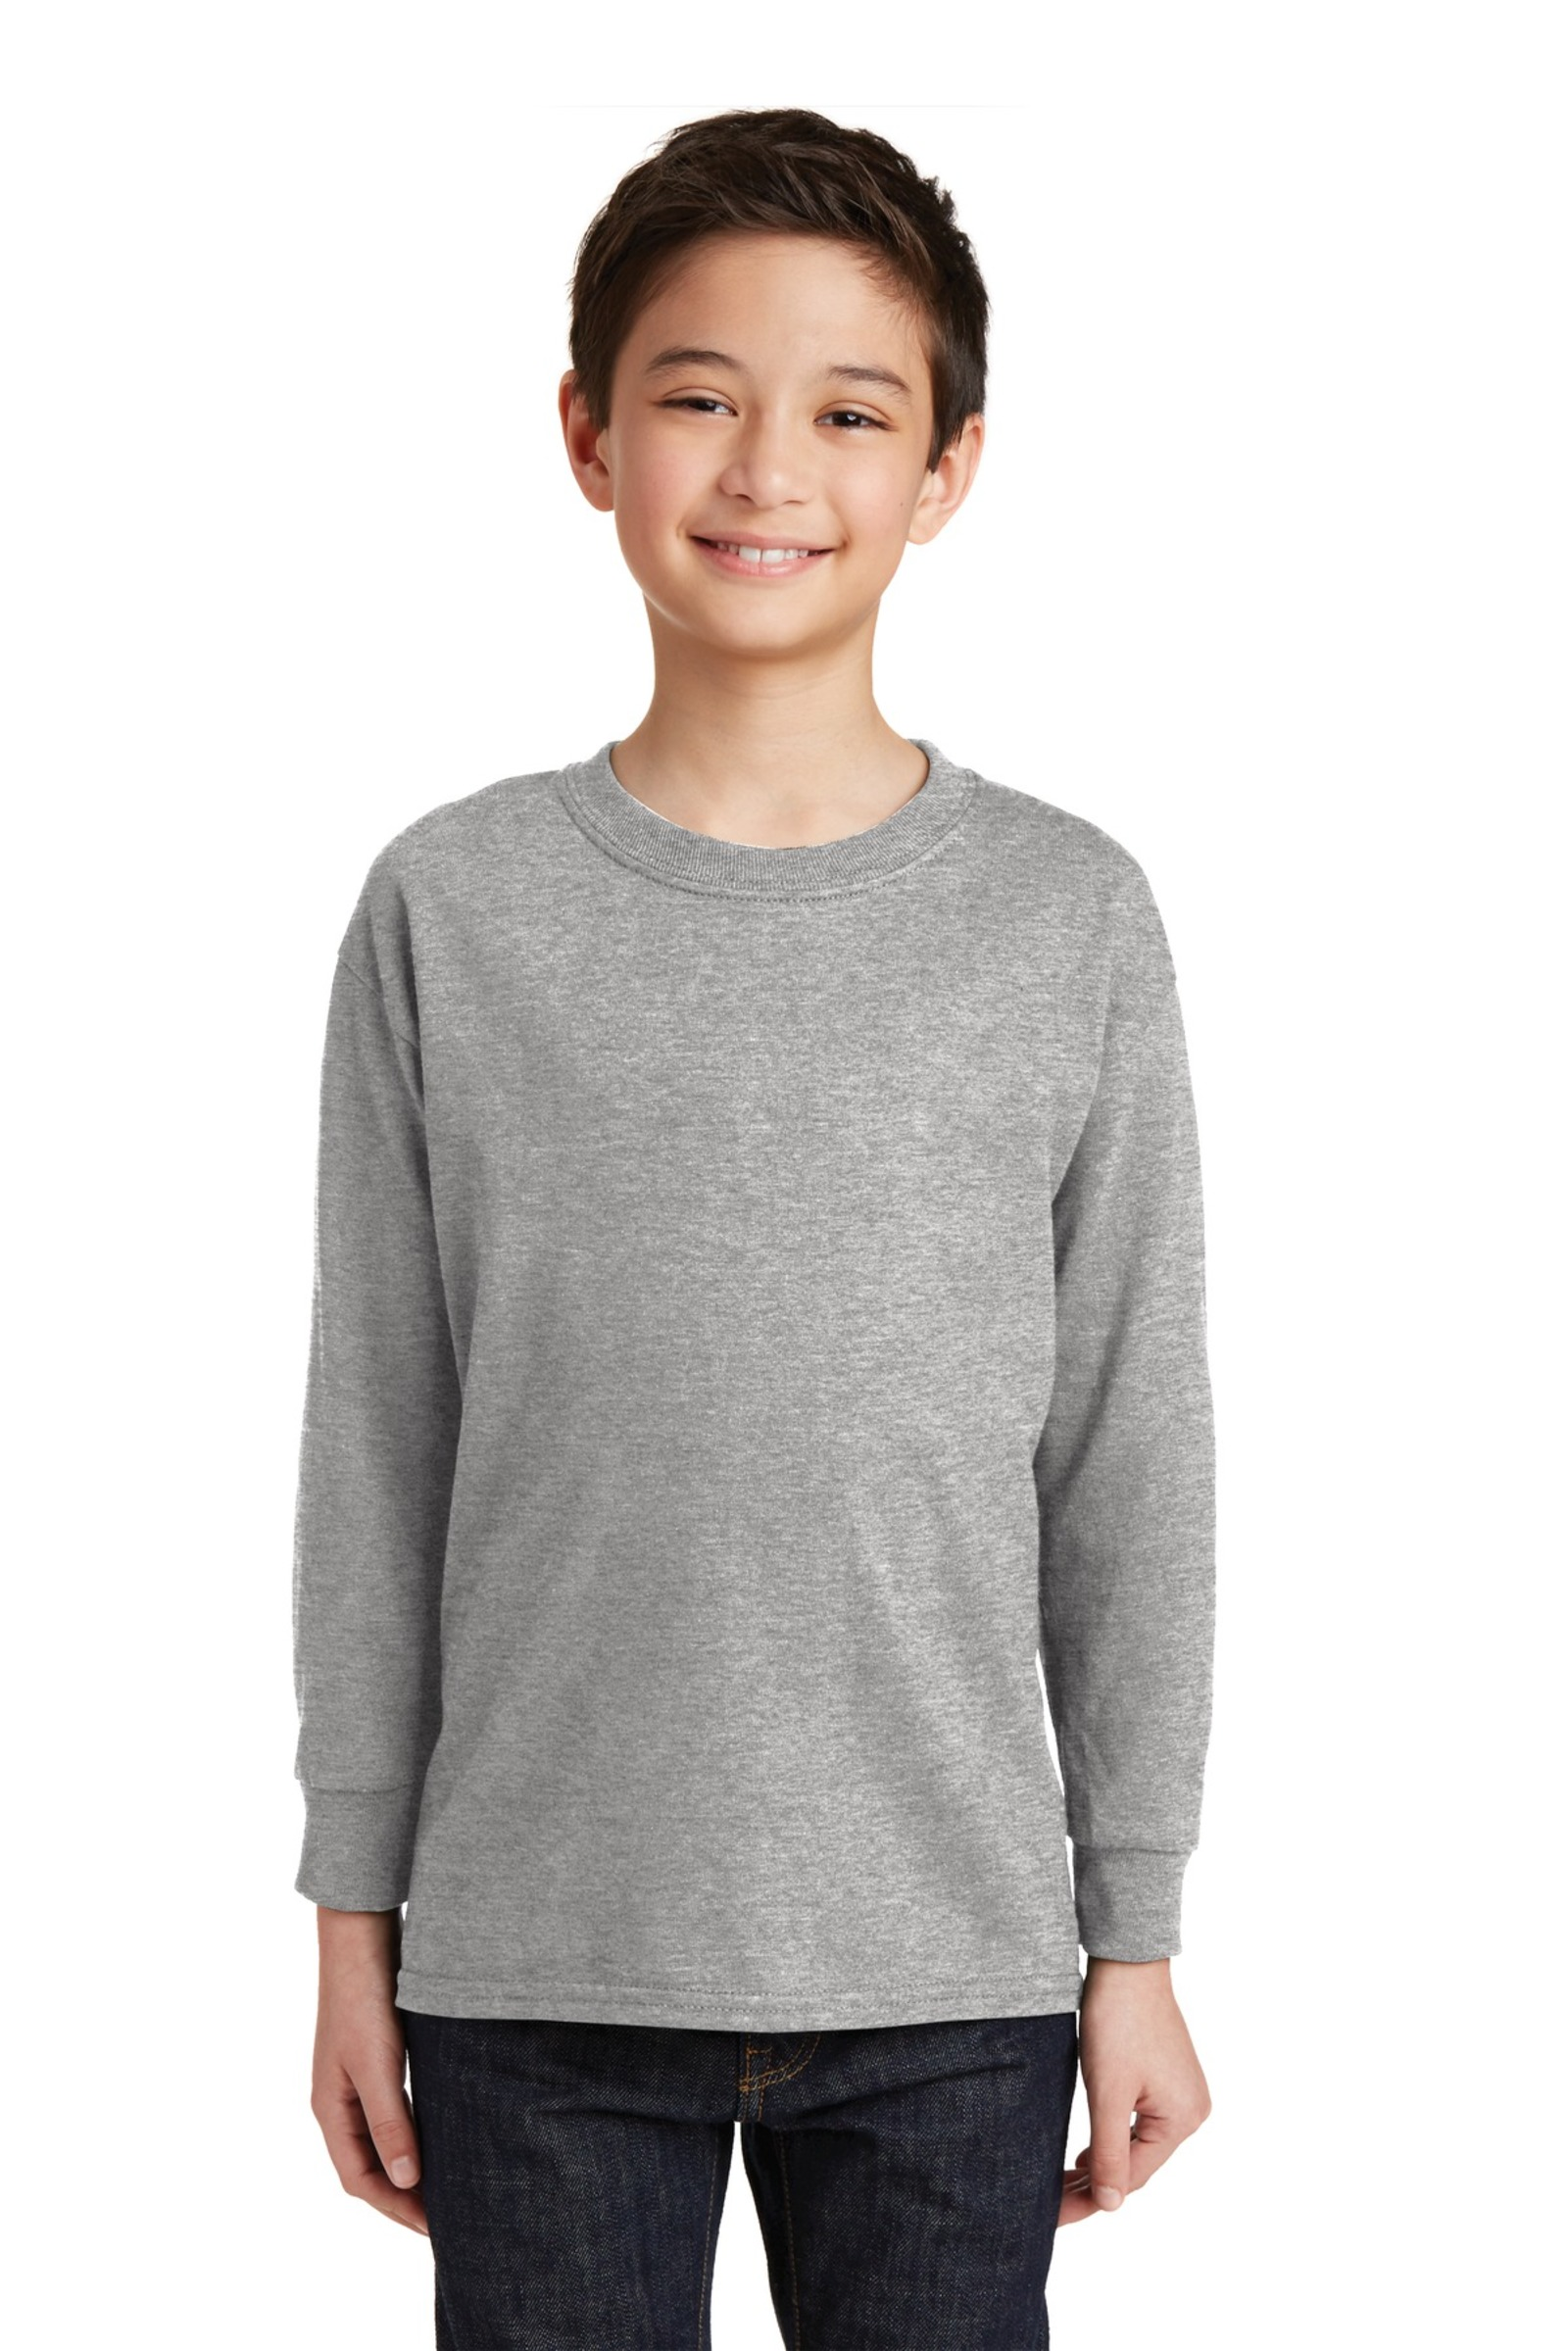 Gildan Printed Youth 100%  Heavy Cotton Long Sleeve T-Shirt